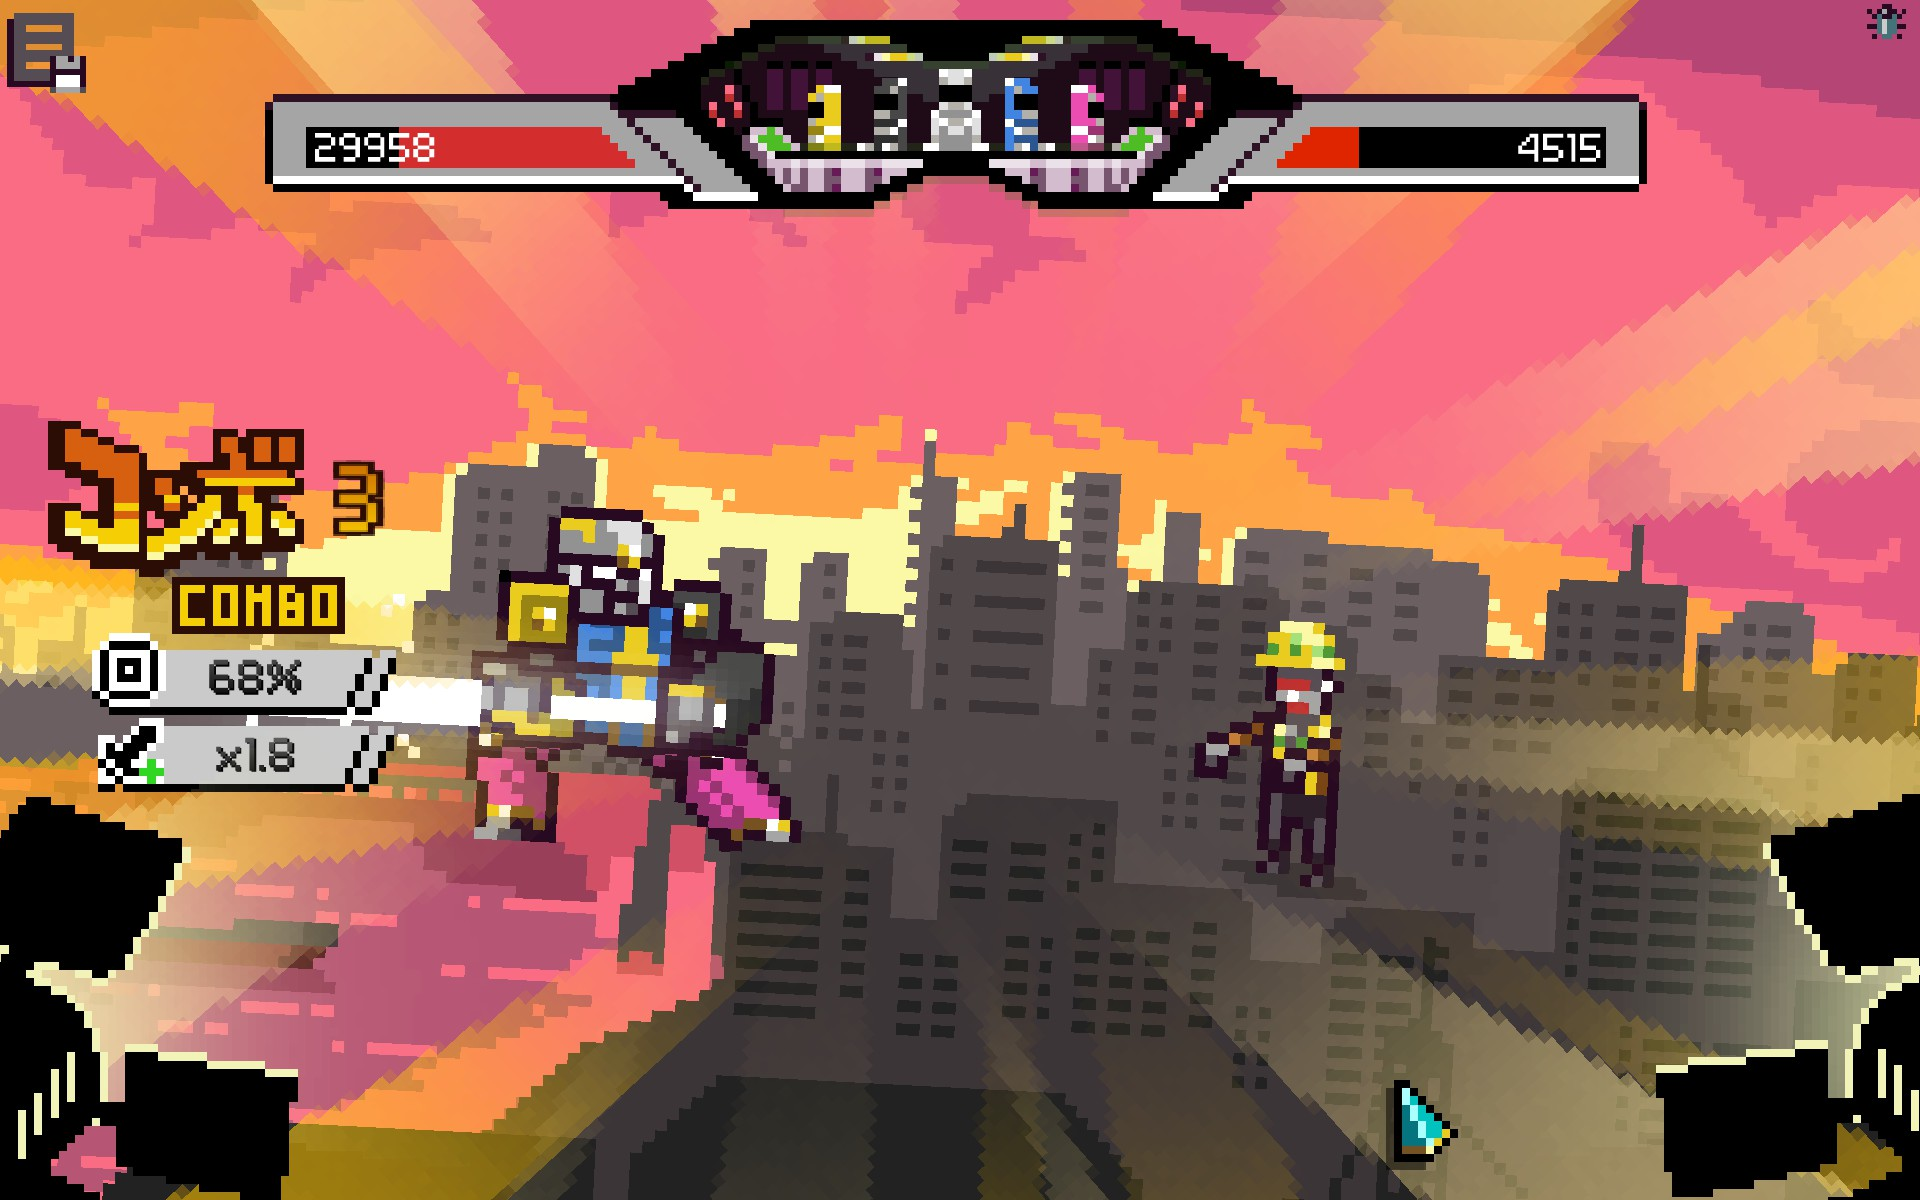 Giant mechs fighting giant zombie construction workers... this game has... everything?